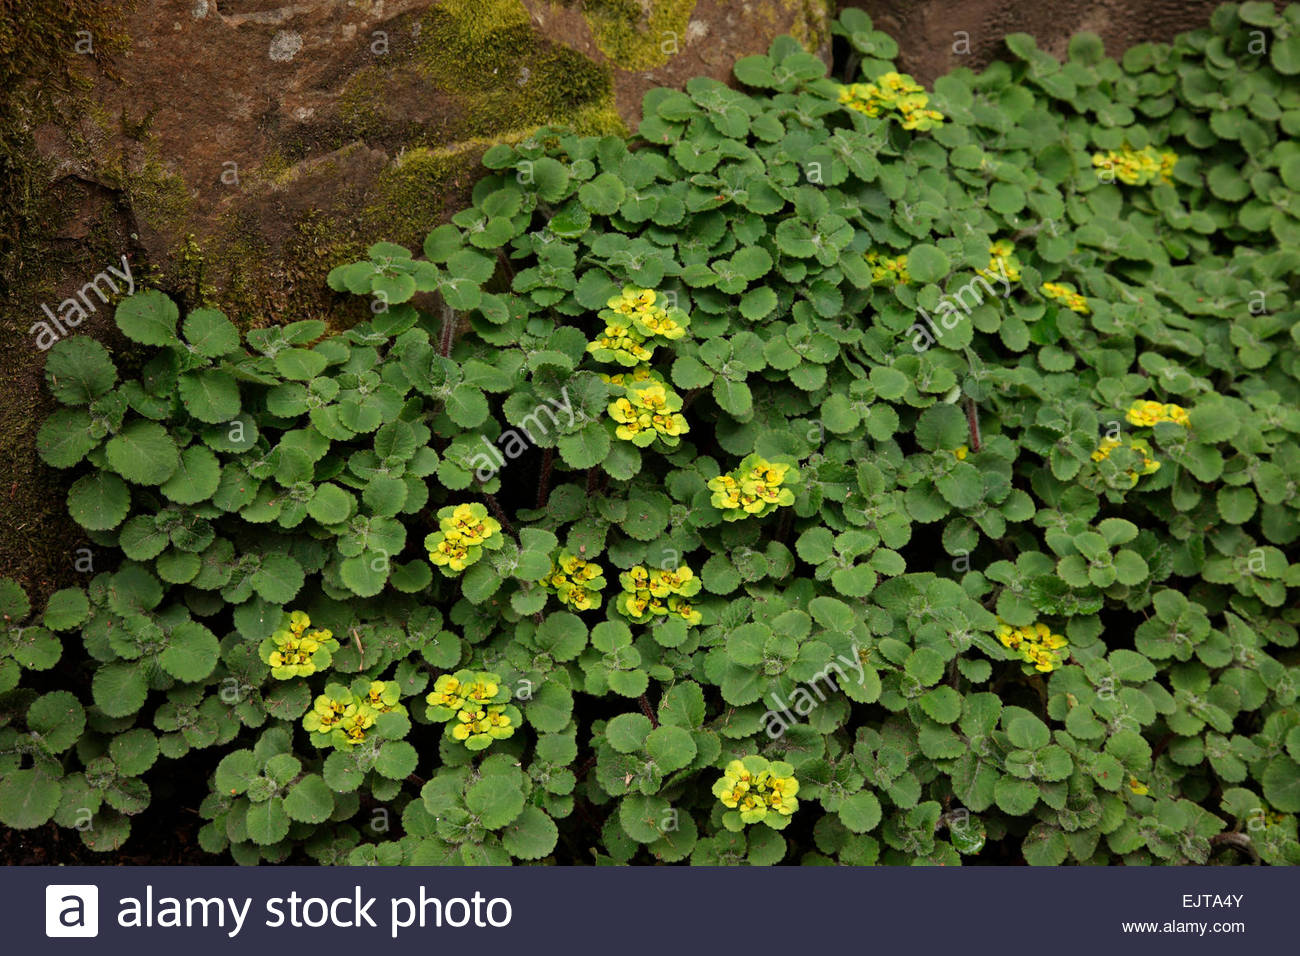 Ground Cover Garden Plant Yellow Flower Stock Photos Ground Cover